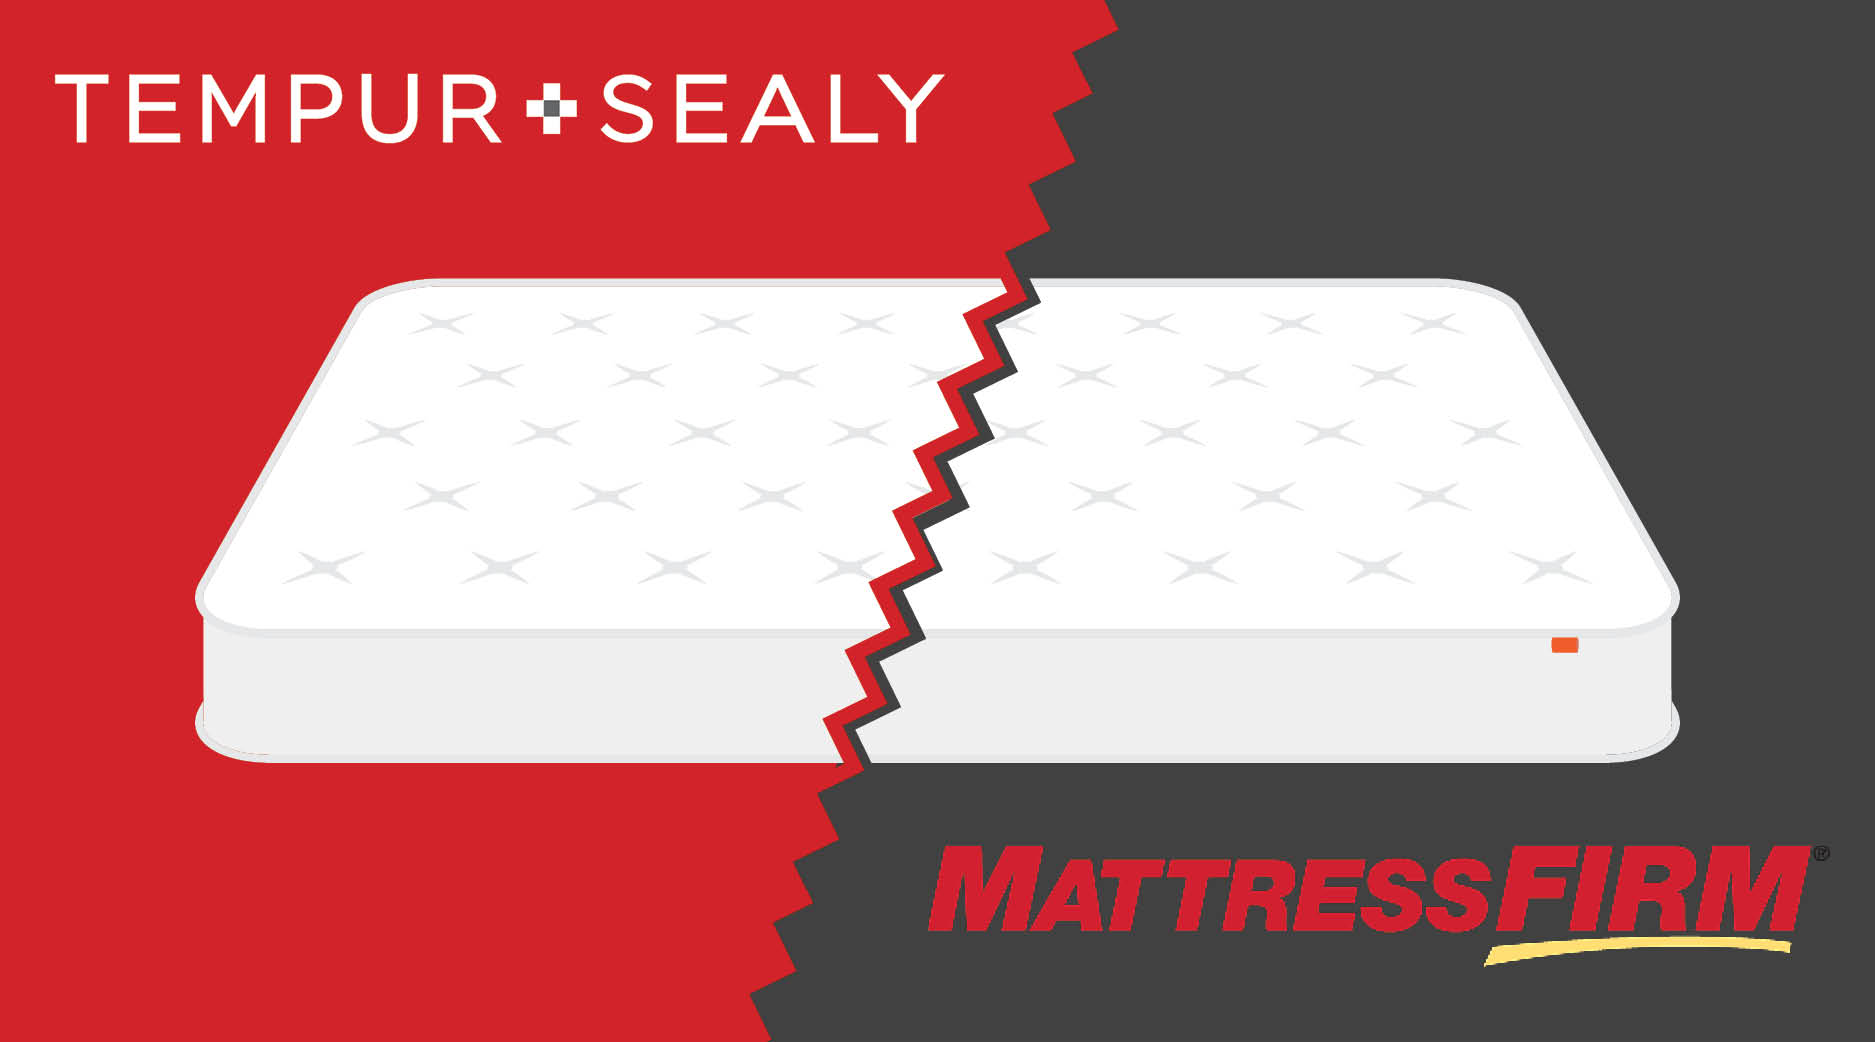 Tempur Sealy_Mattress Firm